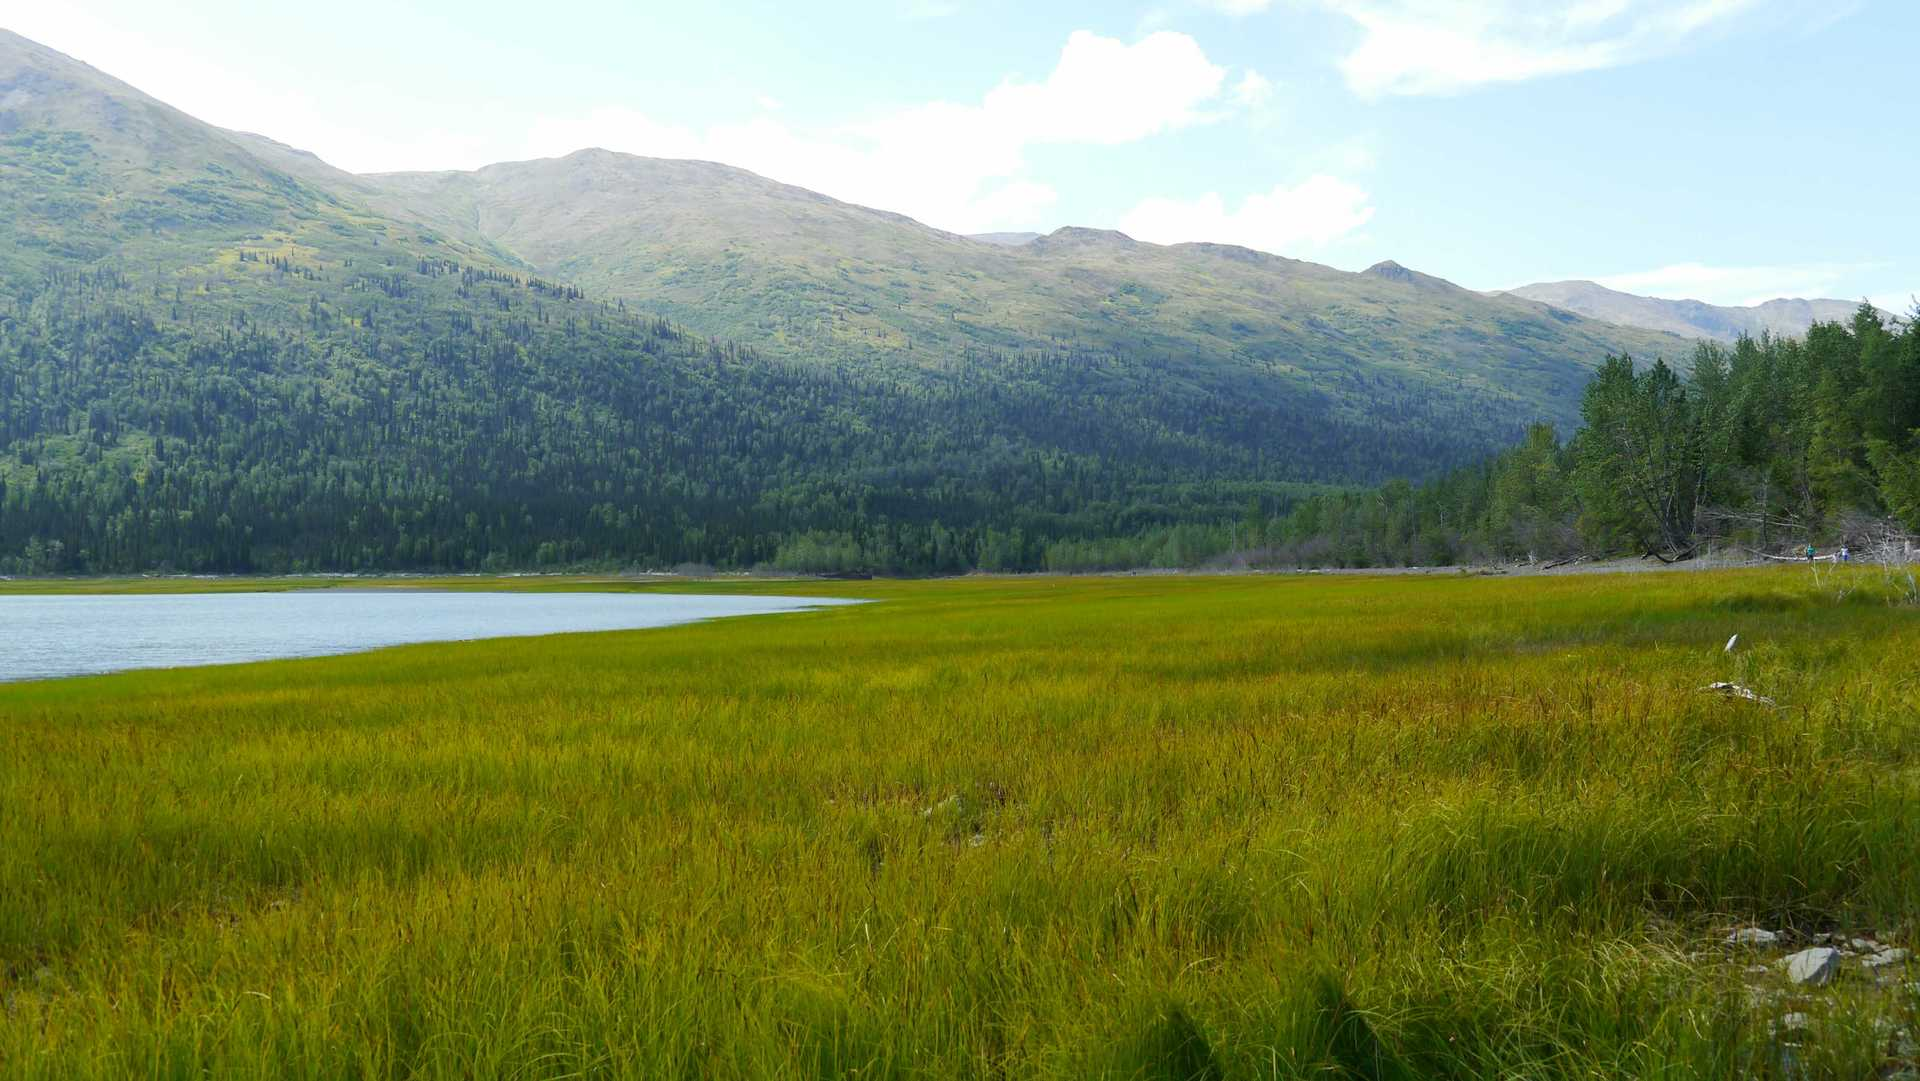 Eklunta Lake (Anchorage), Alaska | elise81, grassland, grass, landscape